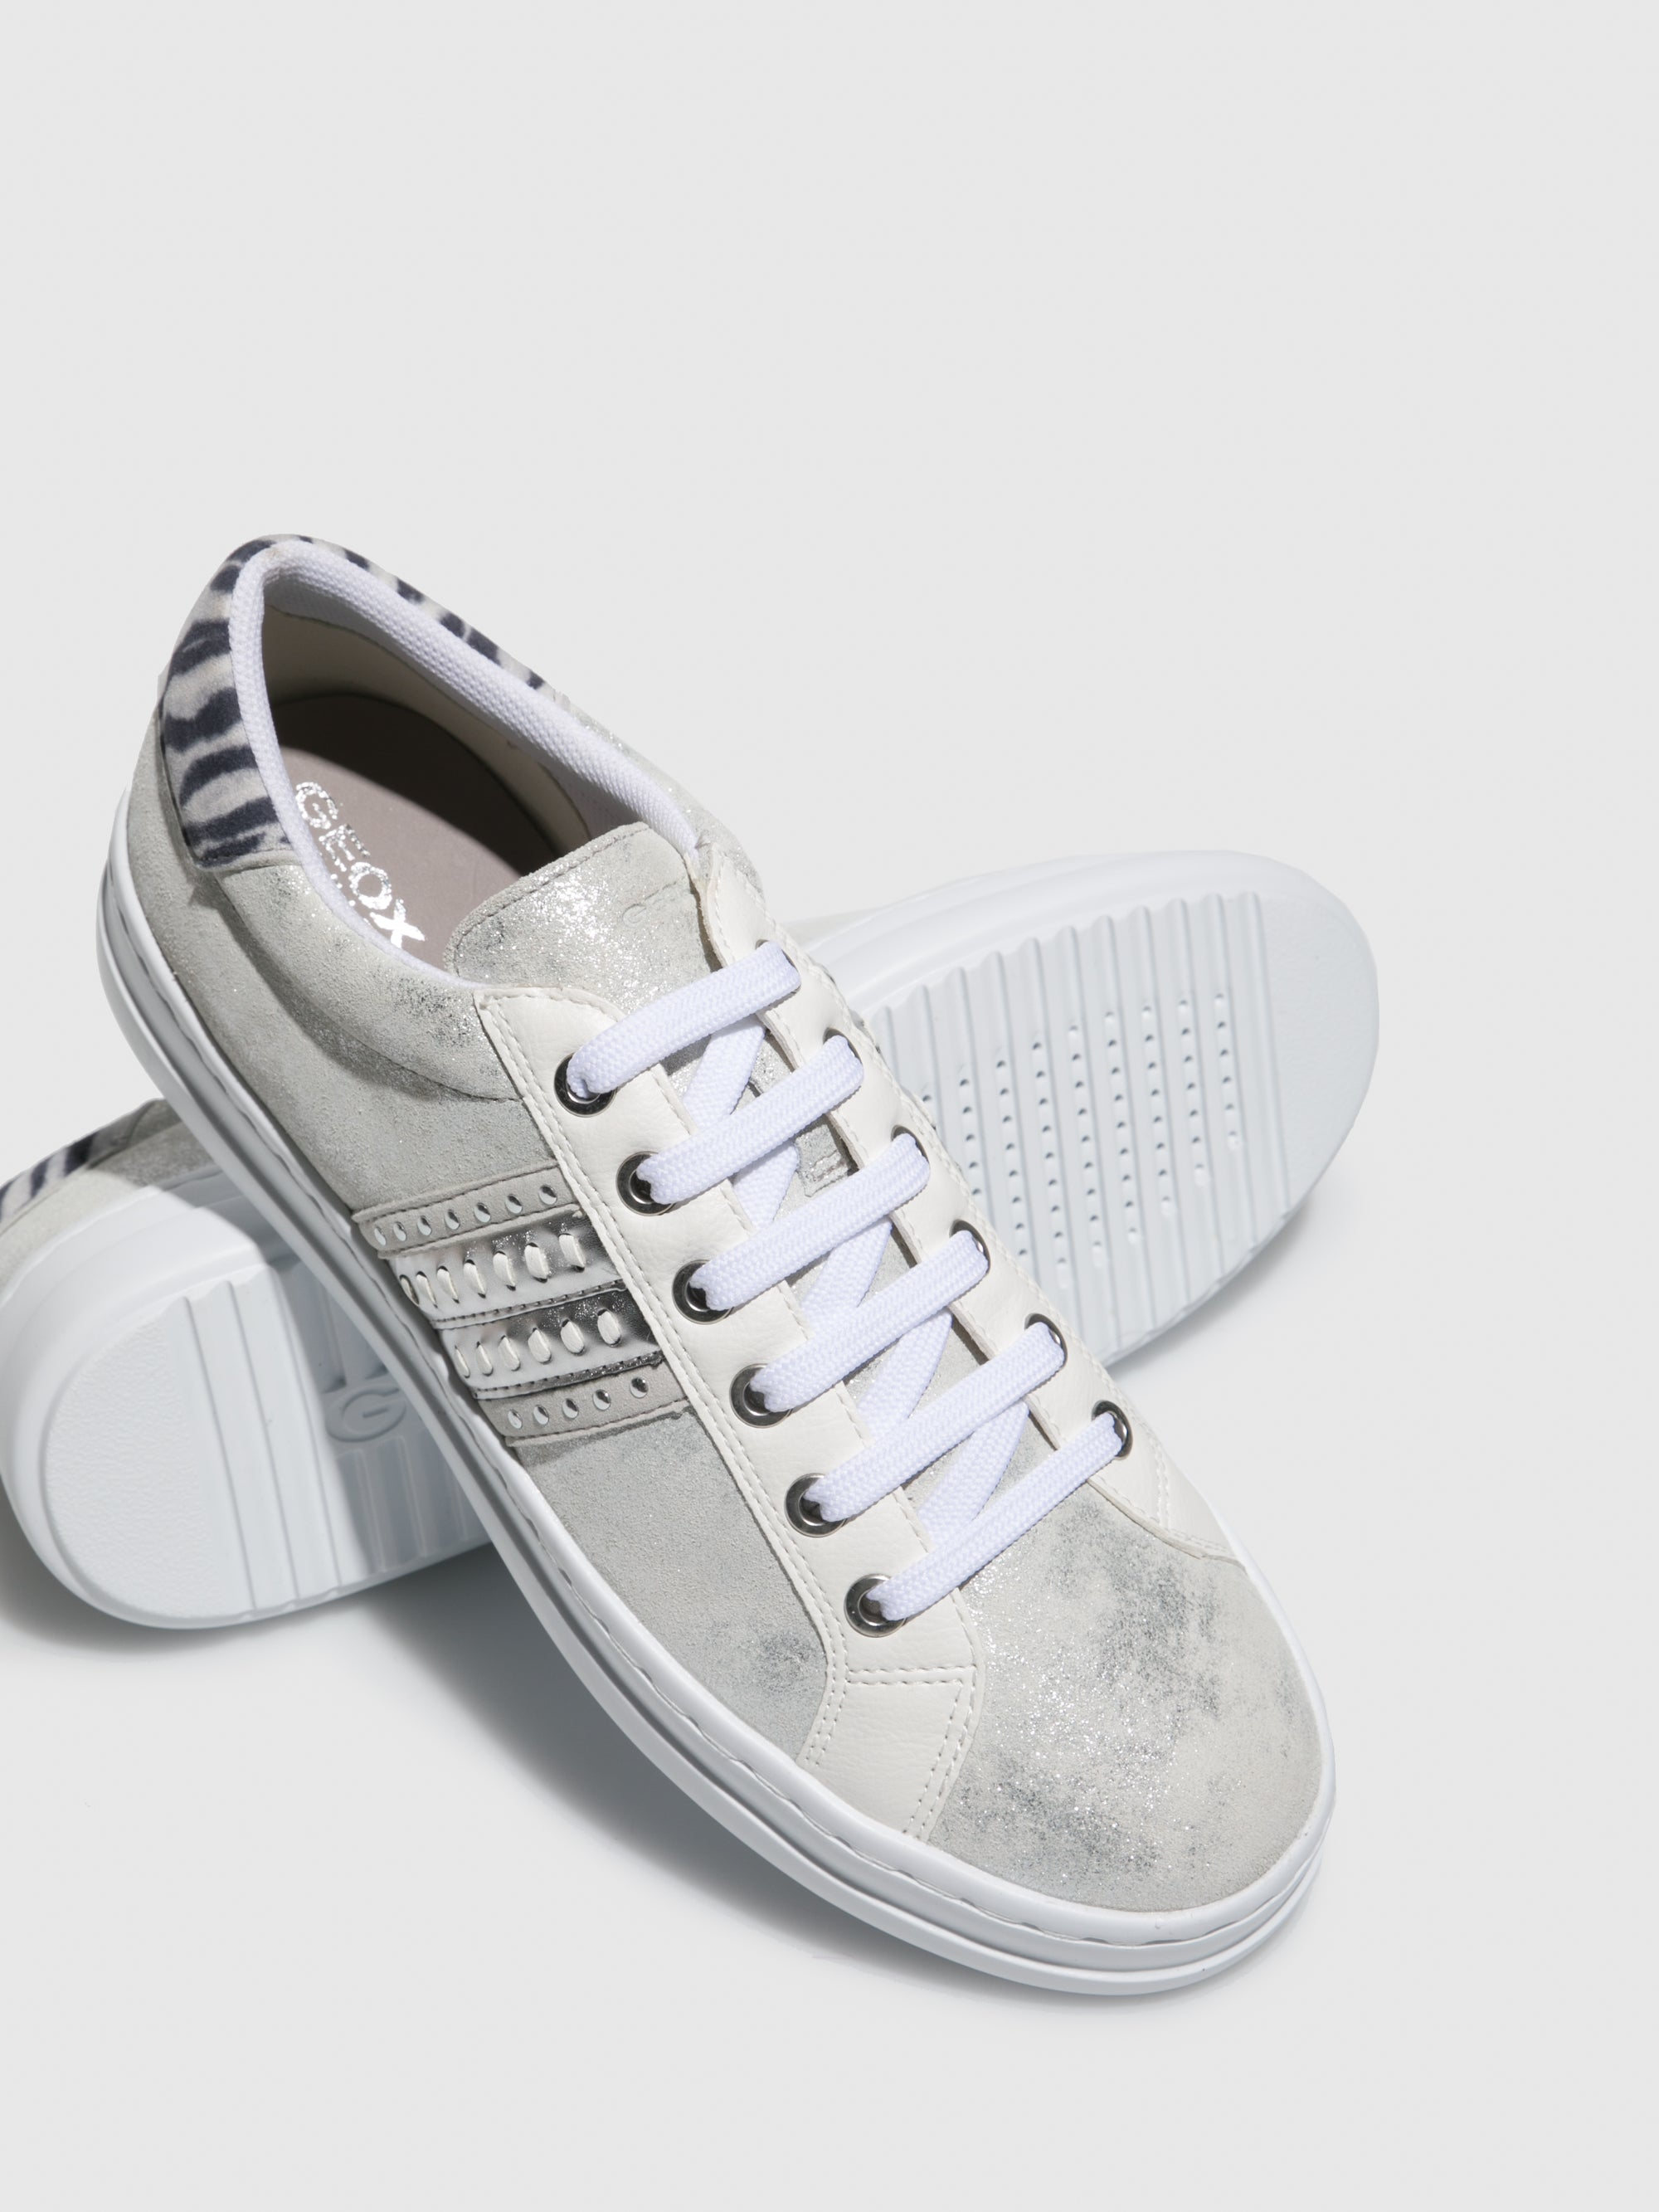 Silver Lace-up Trainers - Overcube